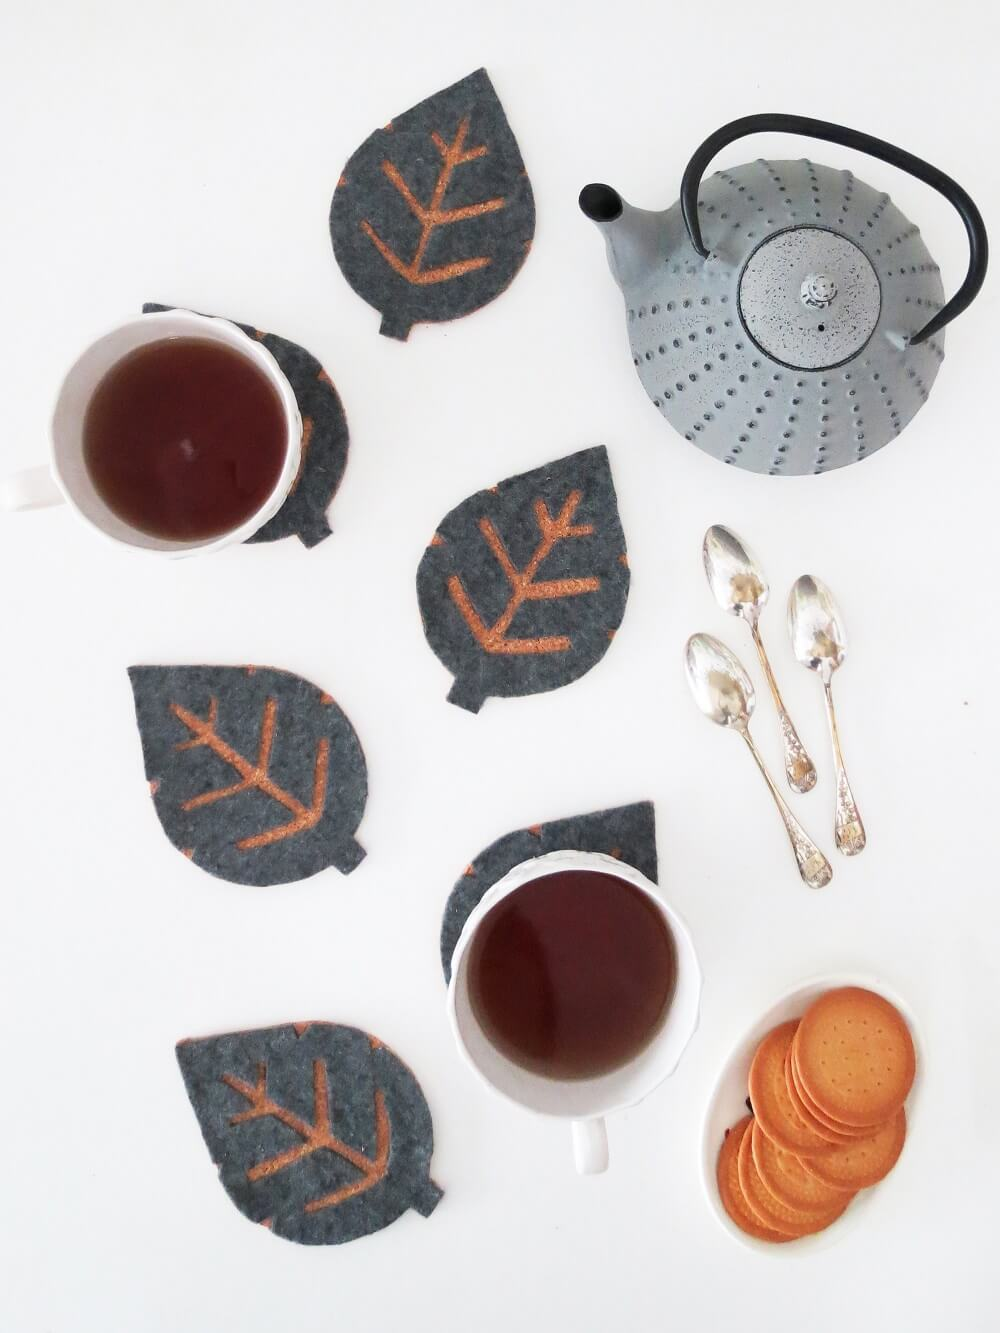 10 Min Diy Cork Coasters With Free Leaf Templates Grillo Designs